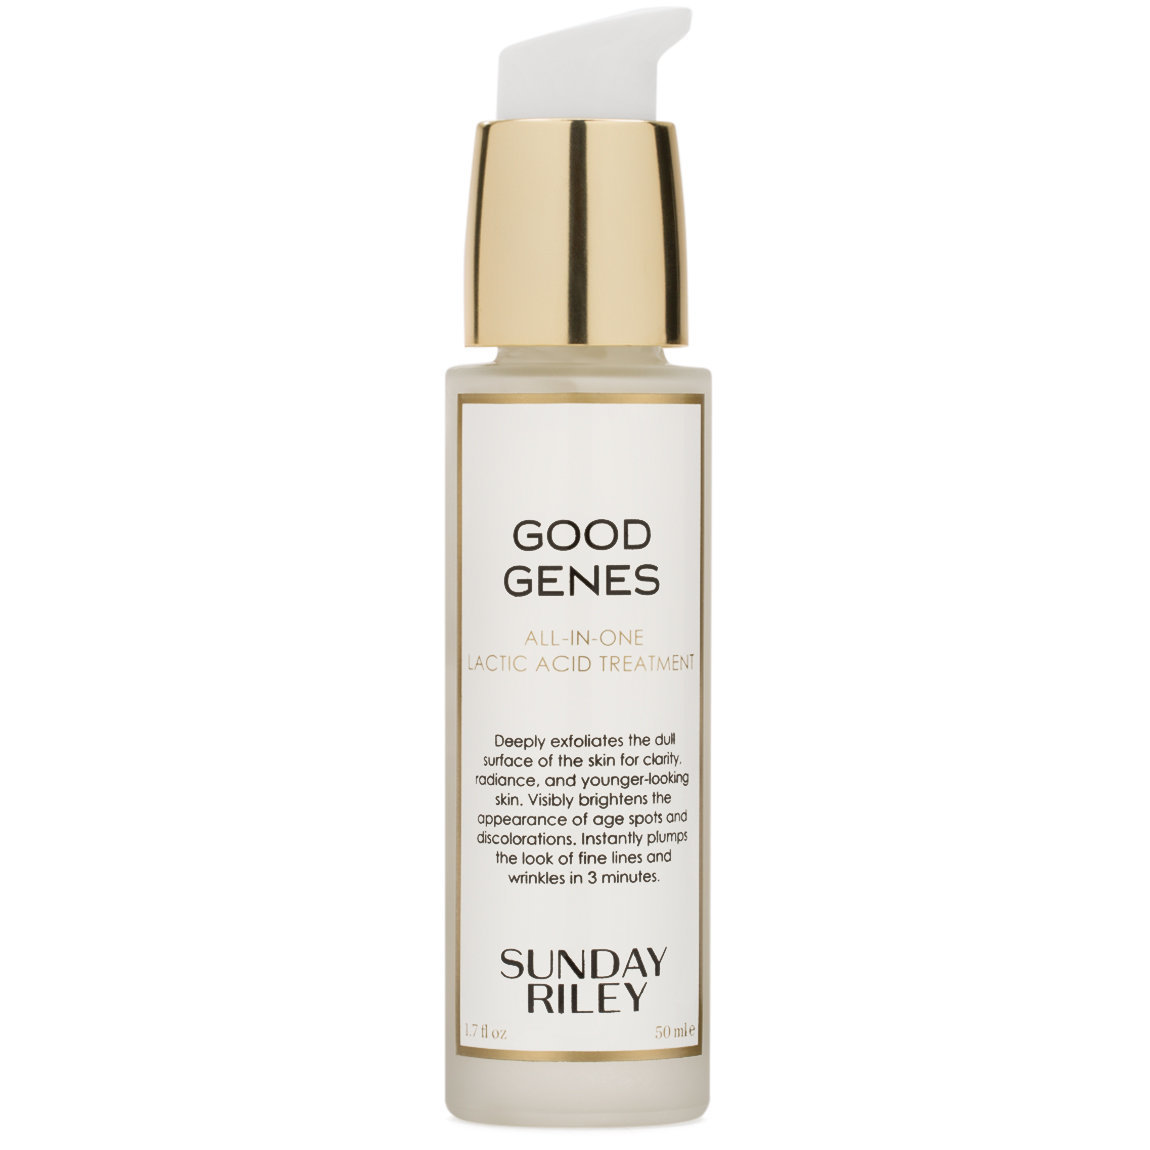 Sunday Riley Good Genes All-In-One Lactic Acid Treatment 50 ml product smear.